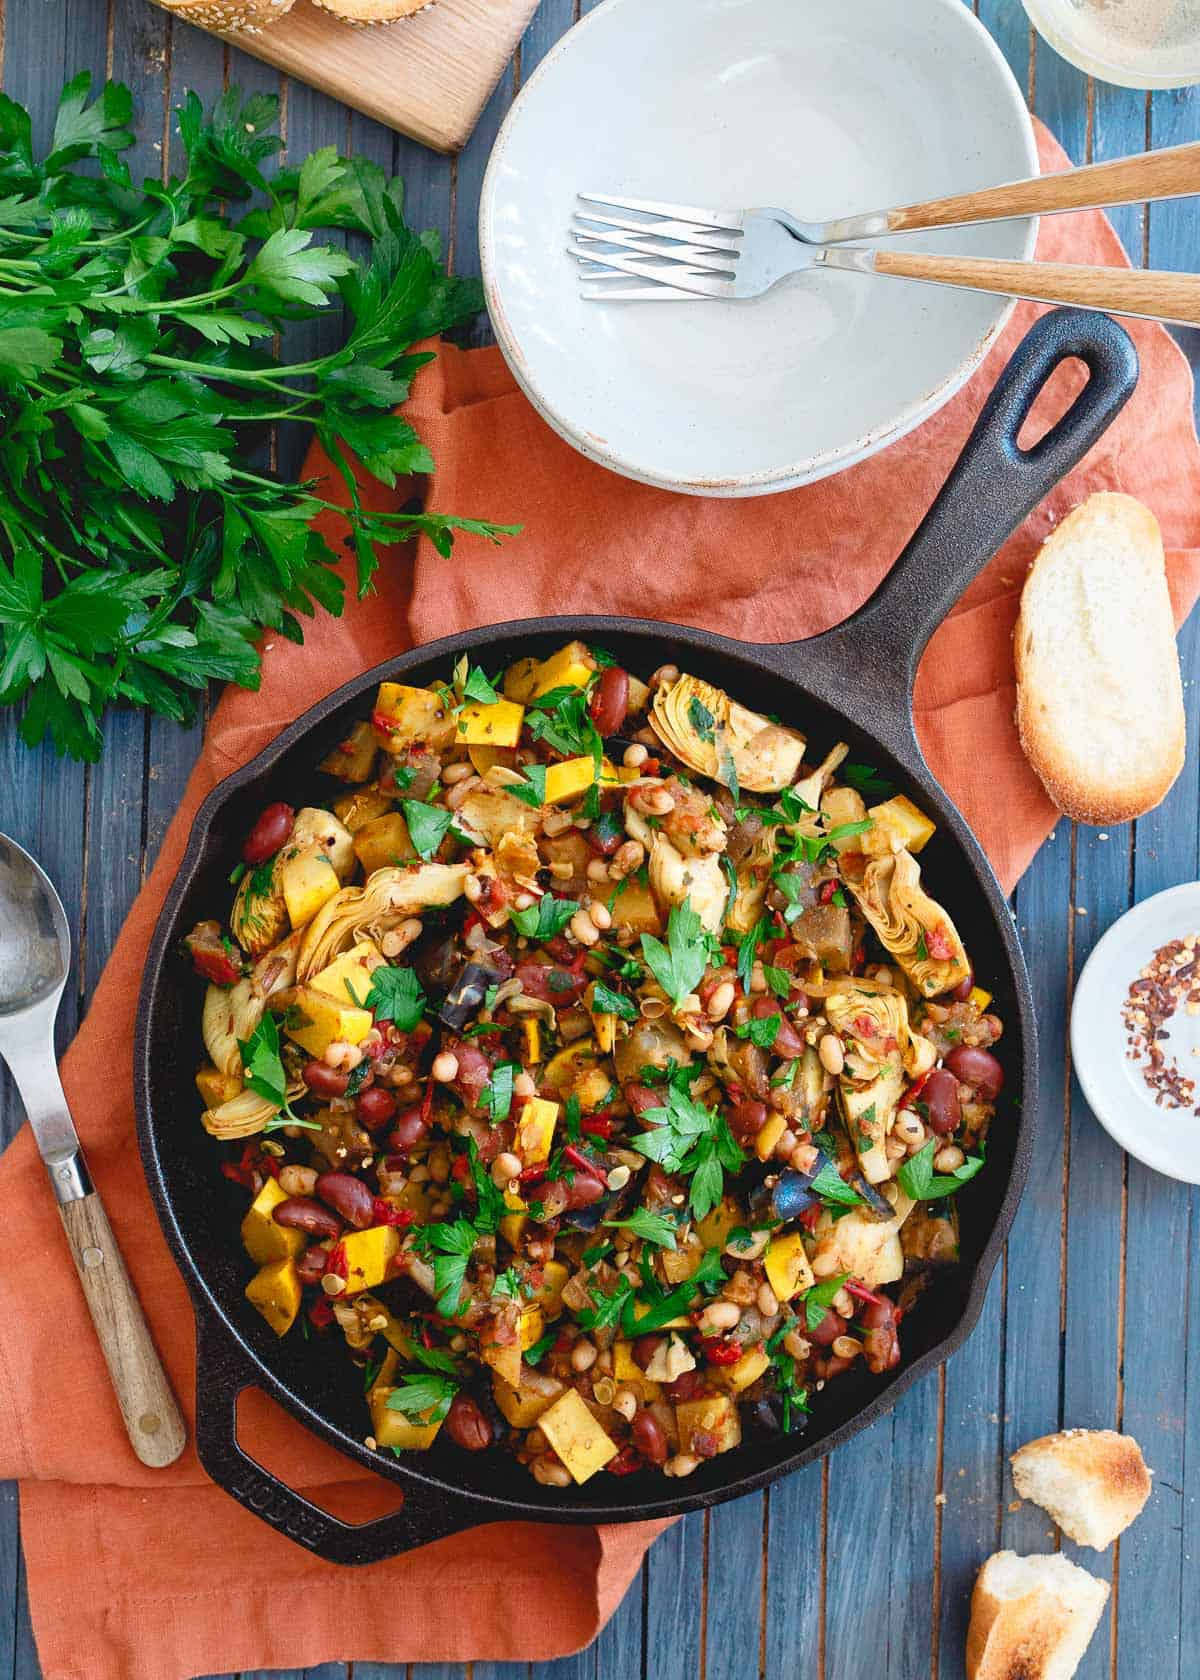 This vegetable bean skillet is packed with all the delicious end of summer garden vegetables and given a hearty, protein boost from two kinds of beans for an easy meatless meal.